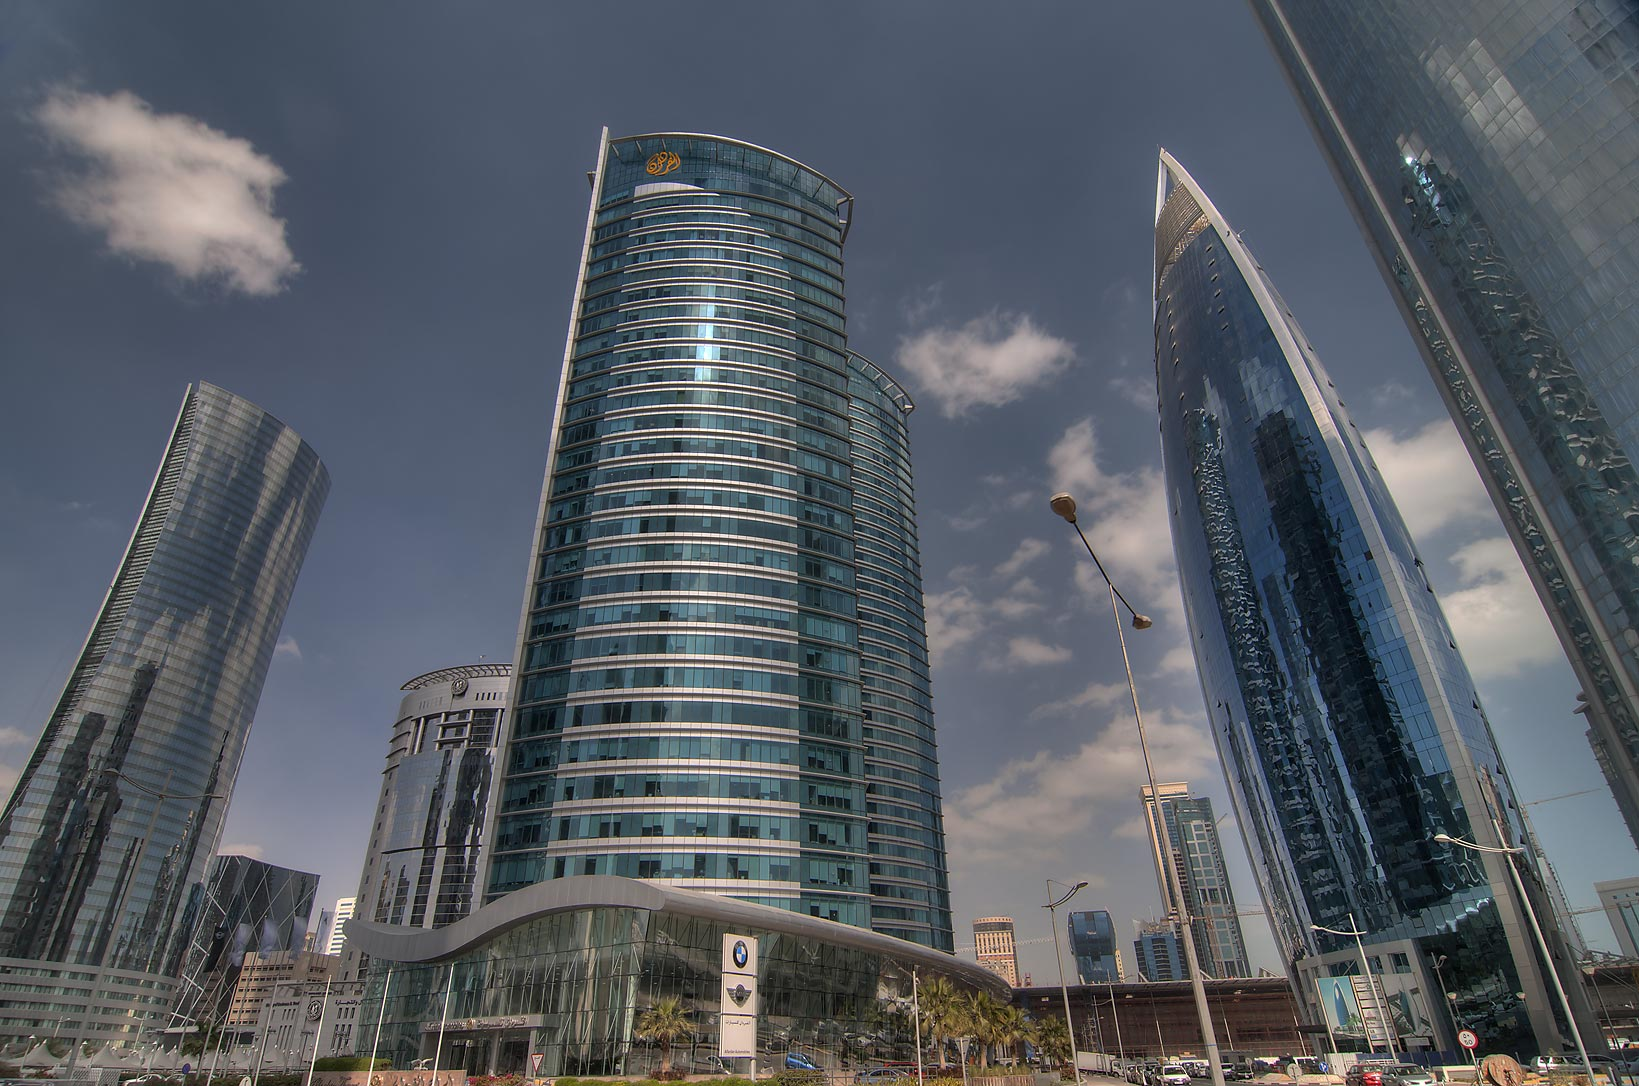 Navigation, Al Fardan, and Woqod towers in West Bay from Al Funduq St.. Doha, Qatar